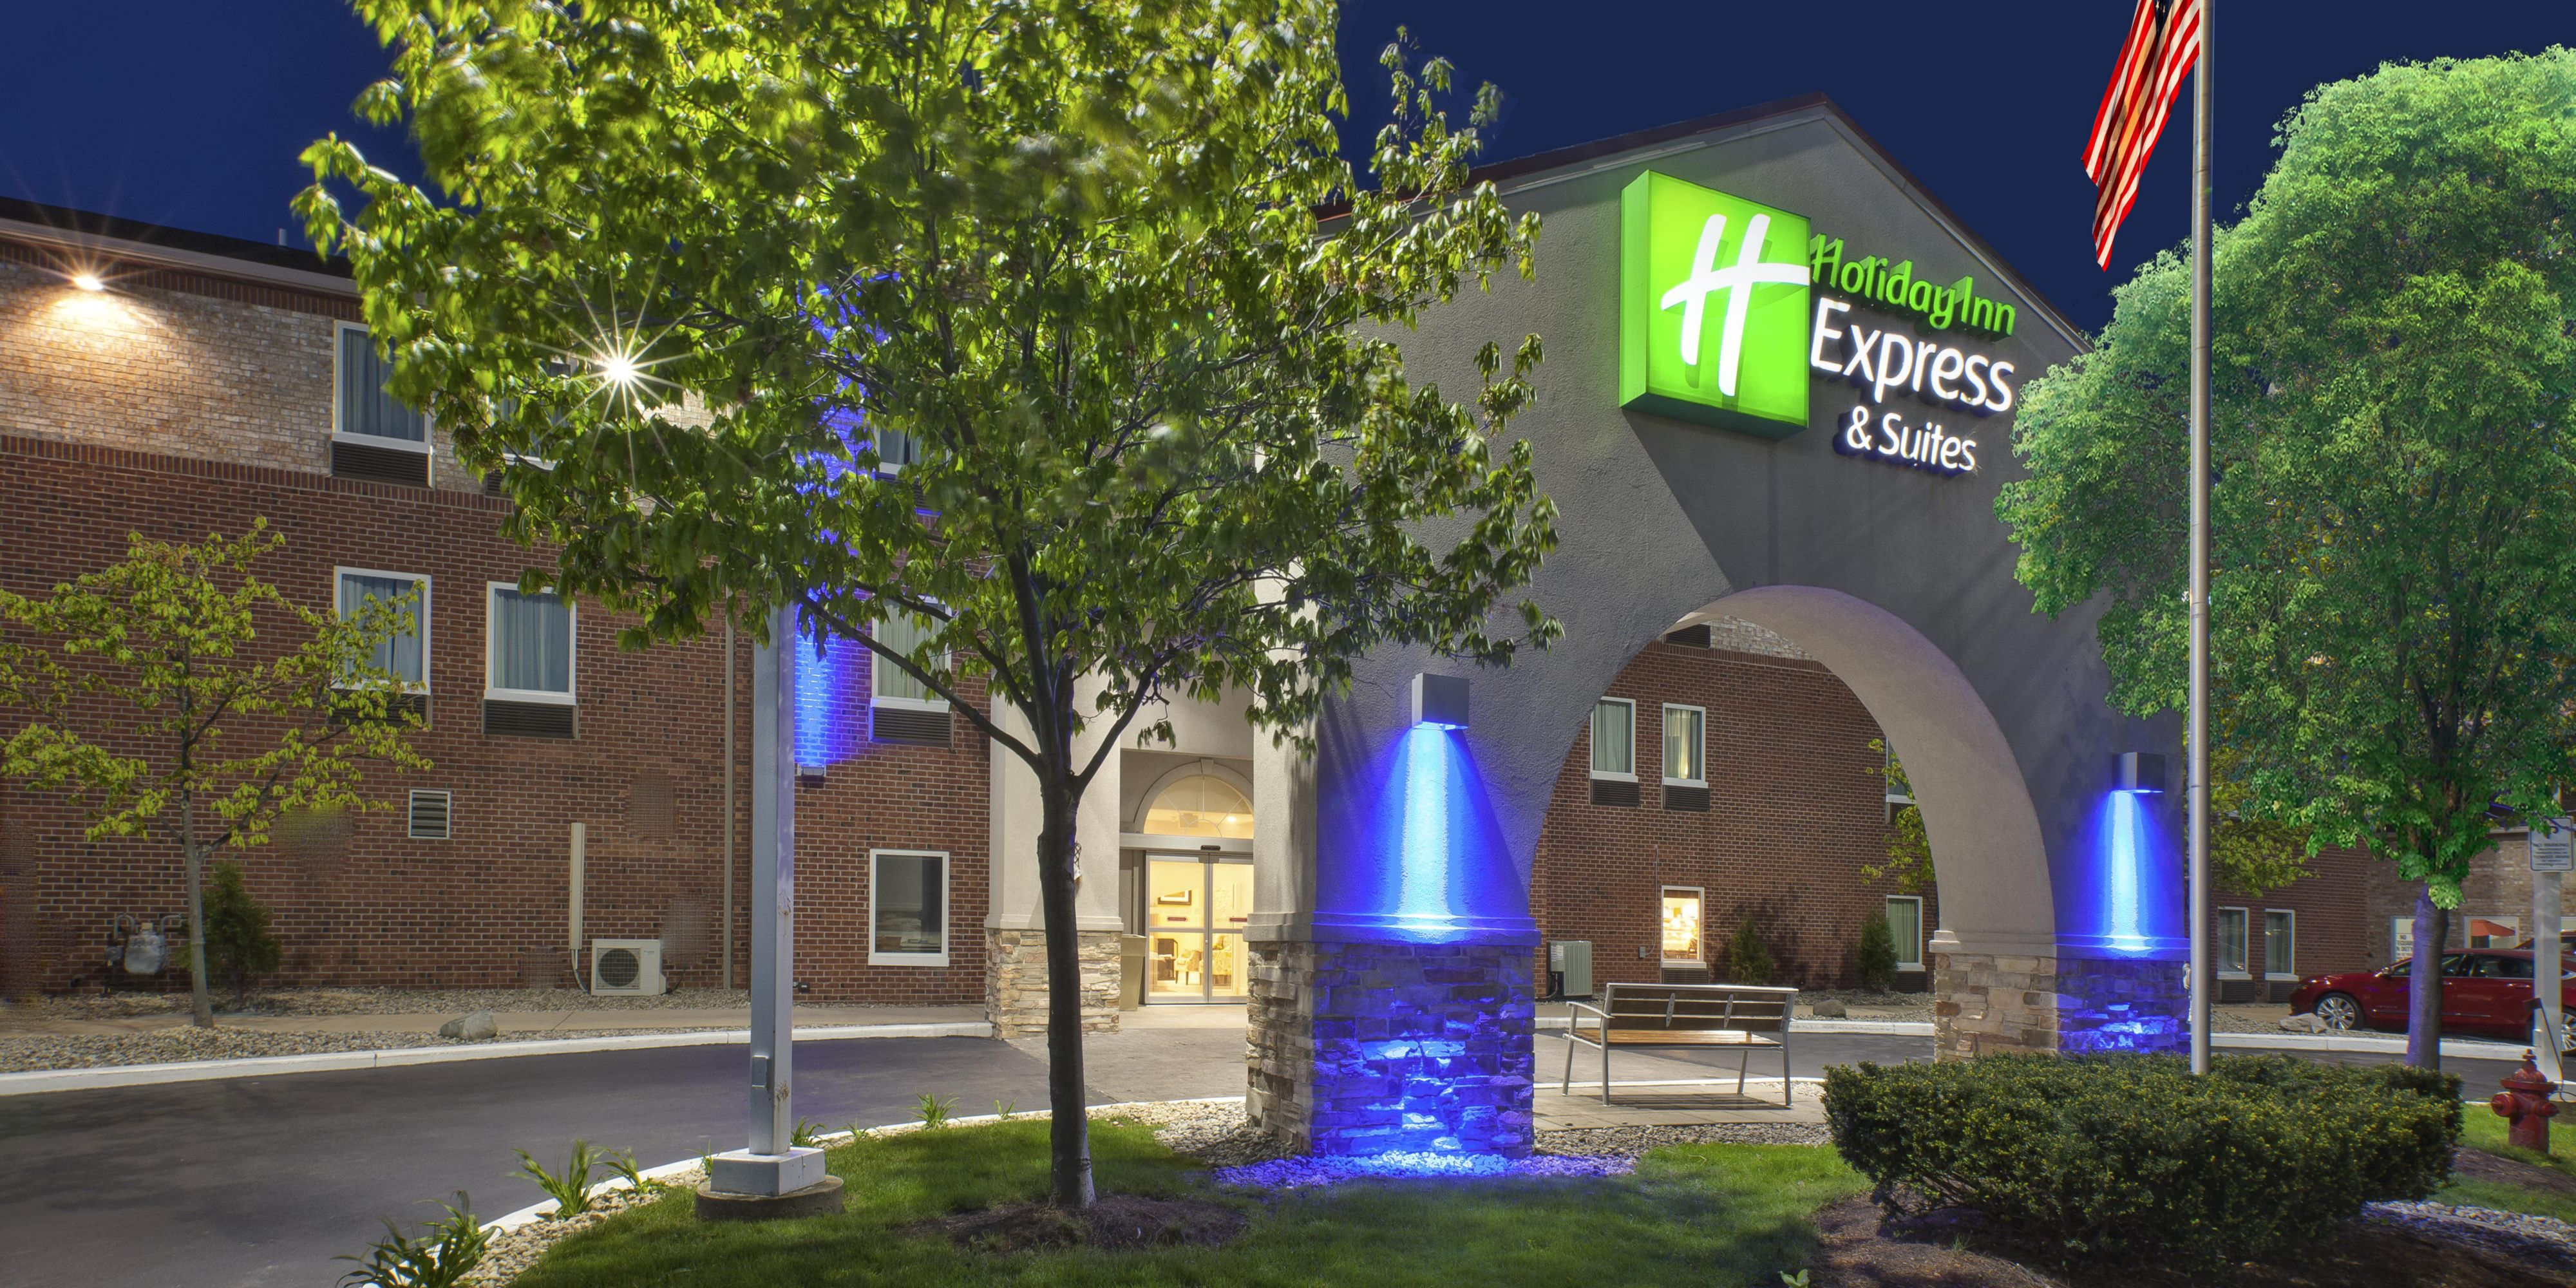 Holiday Inn Express And Suites Benton Harbor 5039849378